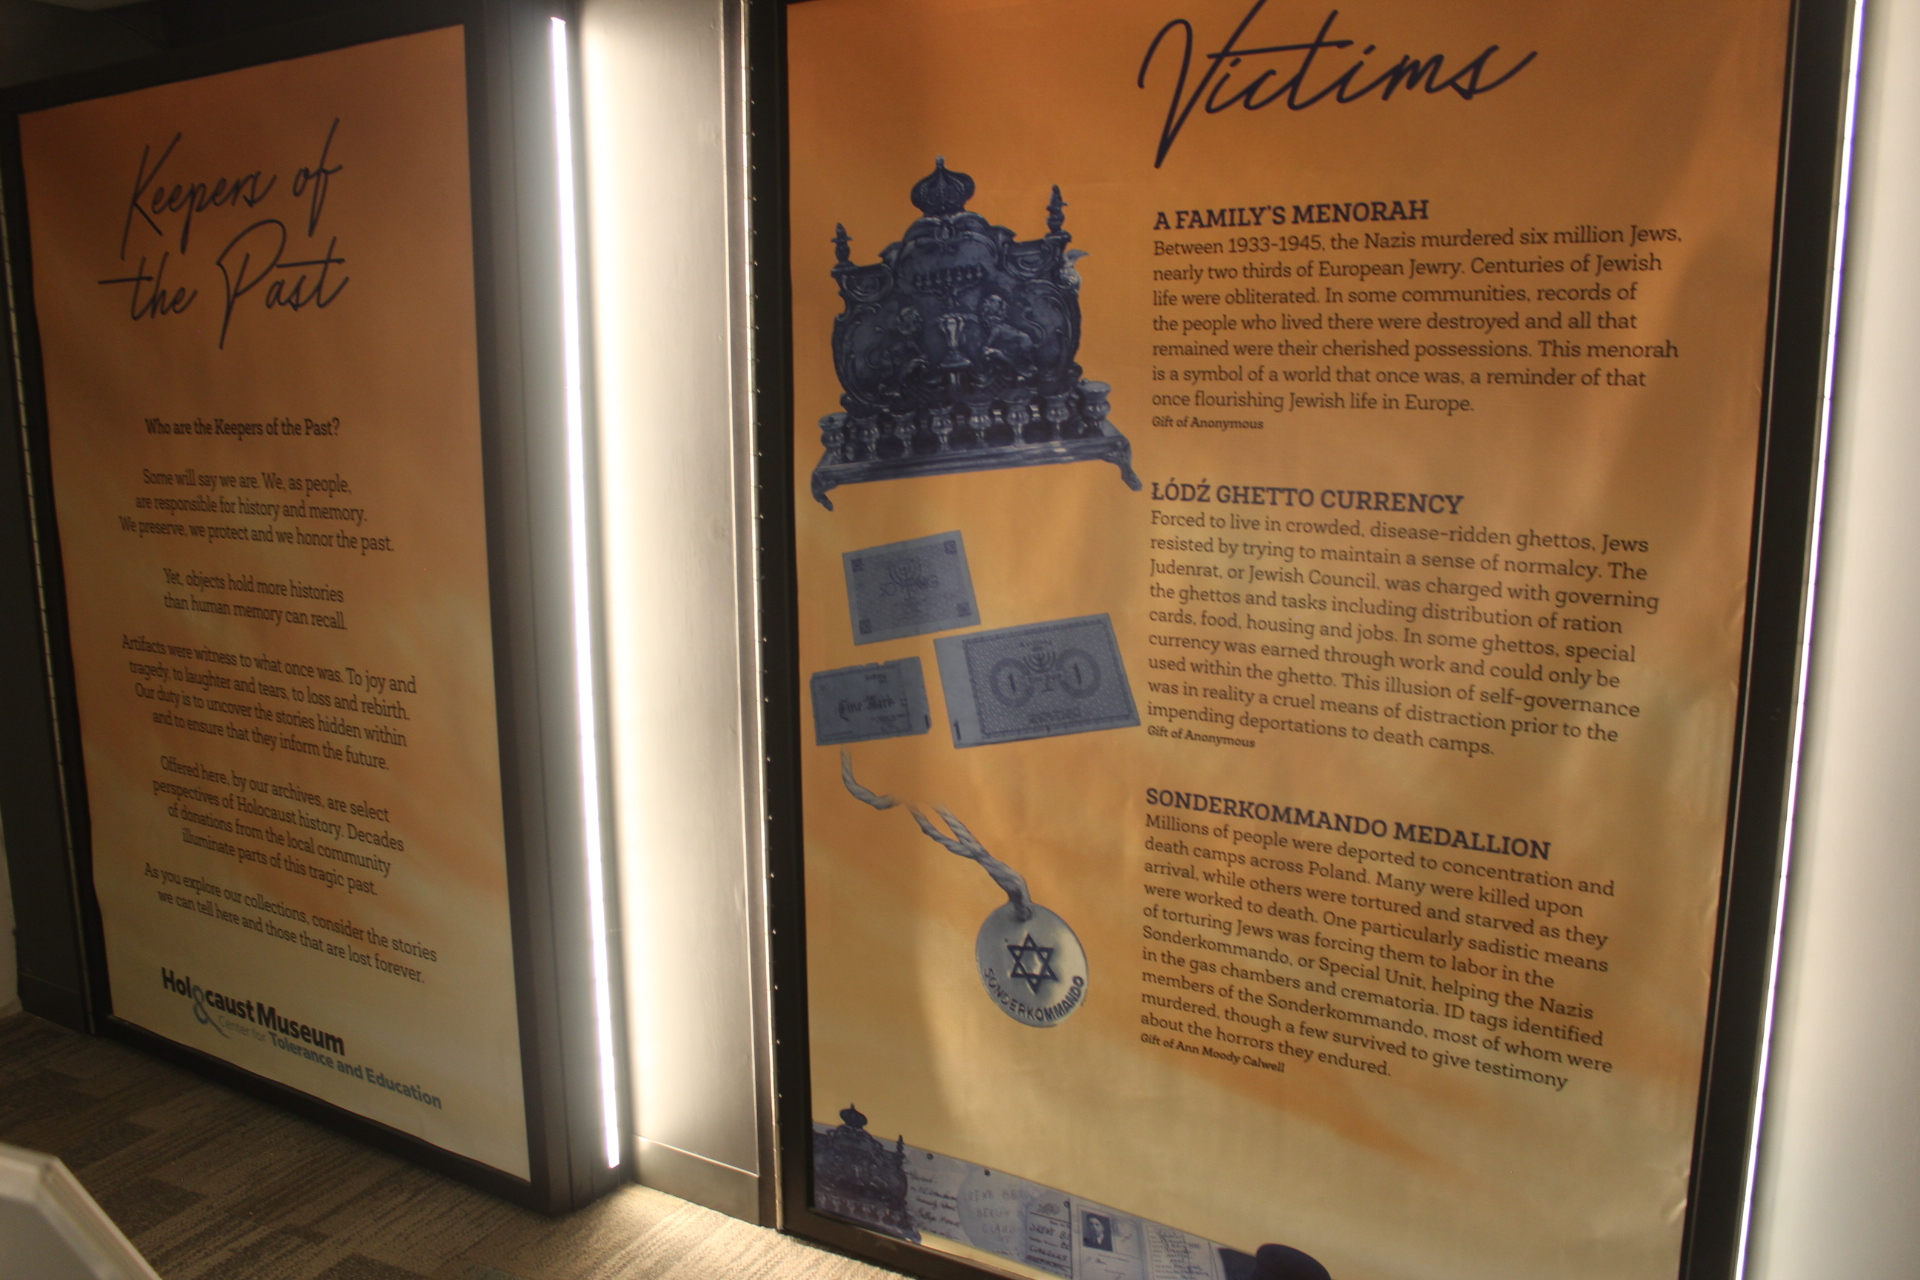 HOLOCAUST MUSEUM & HAAC EXAMINE JEWISH – AFRICAN AMERICAN RELATIONS PART 2